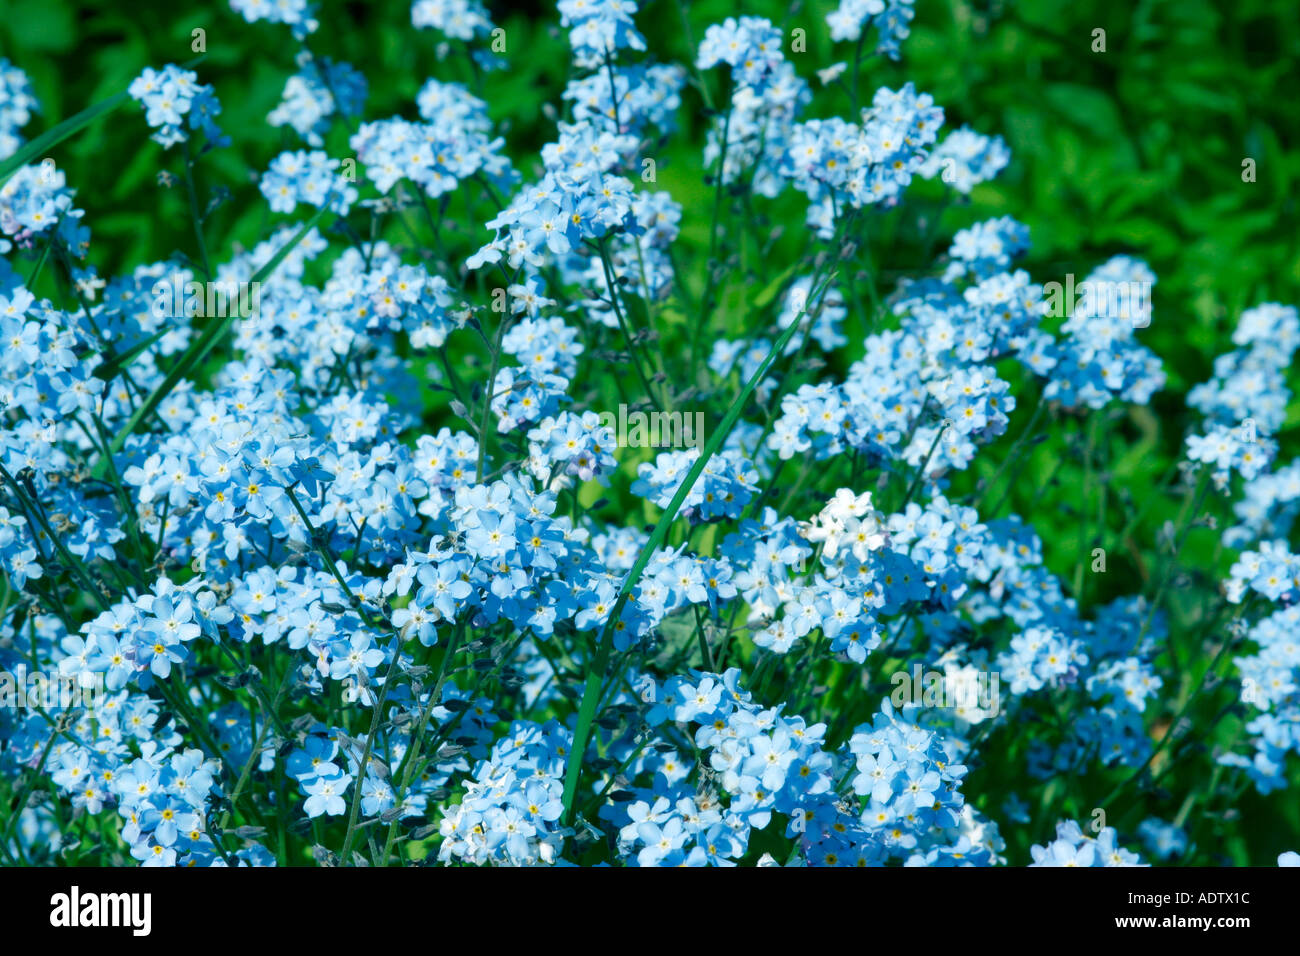 Garden flowers names - Blue Flowers Of Garden Plant Forget Me Not Botanical Name Myosotis Sylvatica